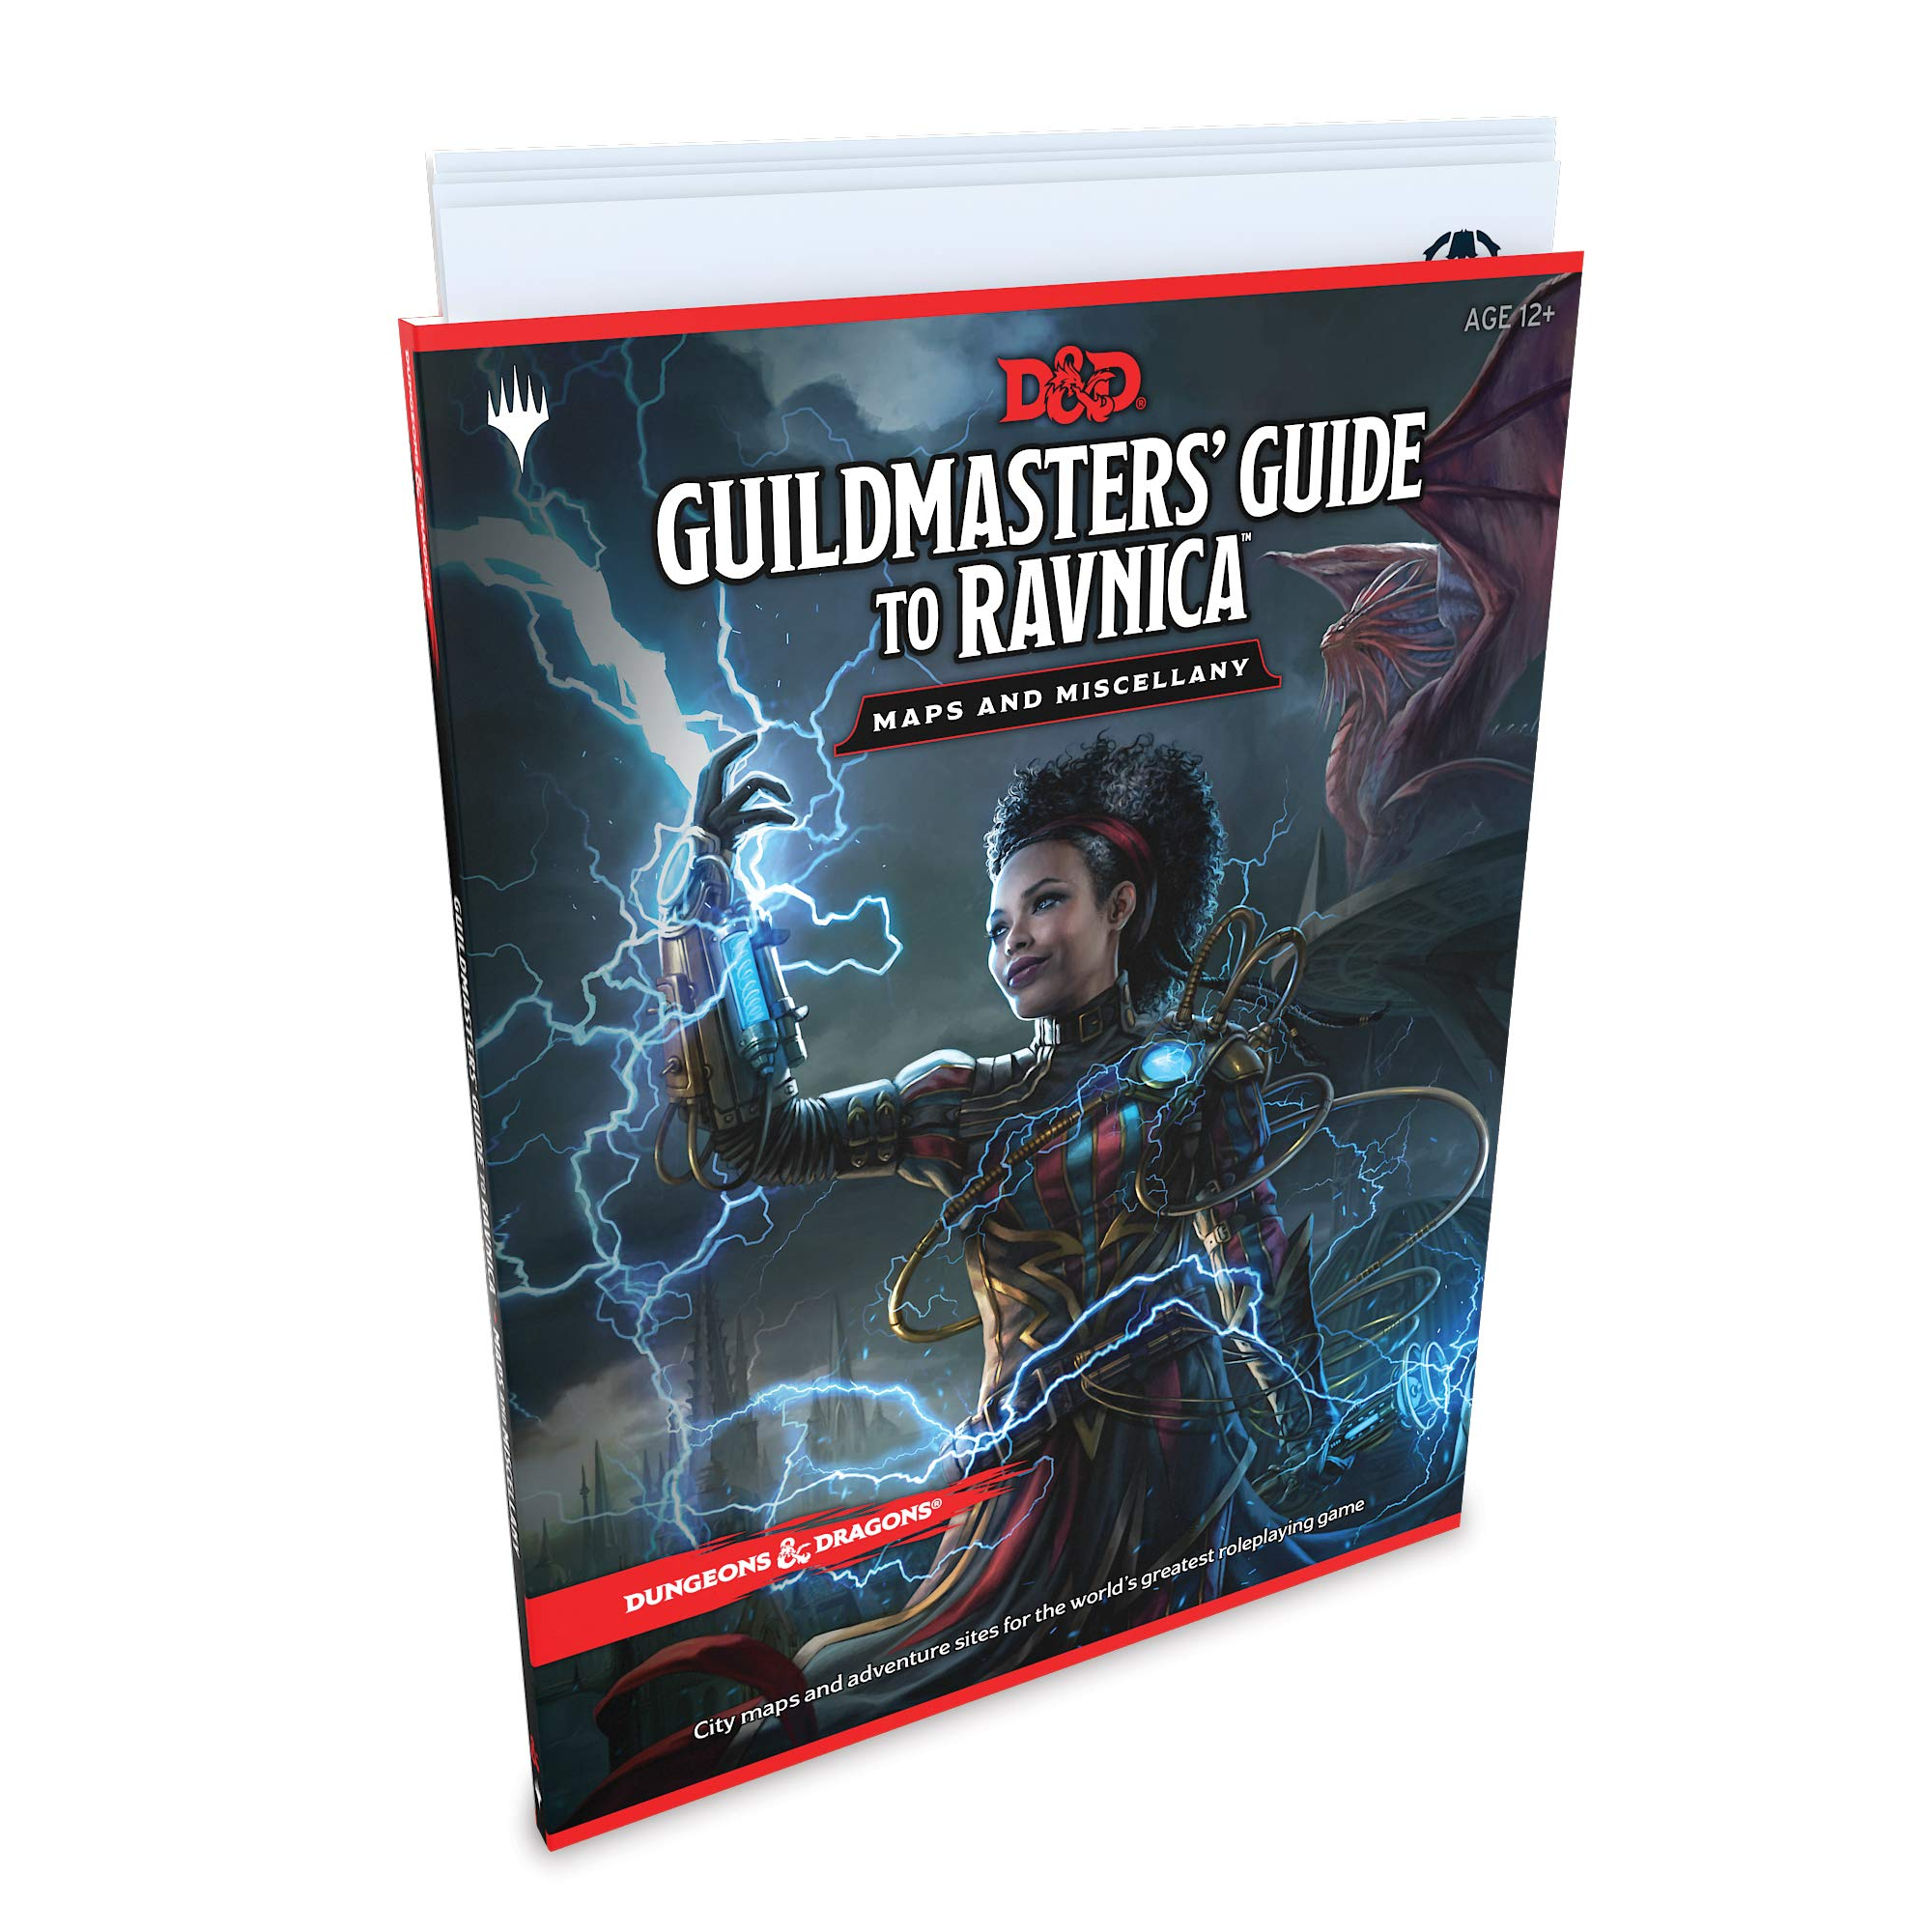 Dungeons & Dragons Guildmasters Guide to Ravnica Maps and Miscellany D&d/Magic: The Gathering Accessory: Amazon.es: Wizards Rpg Team: Libros en idiomas extranjeros